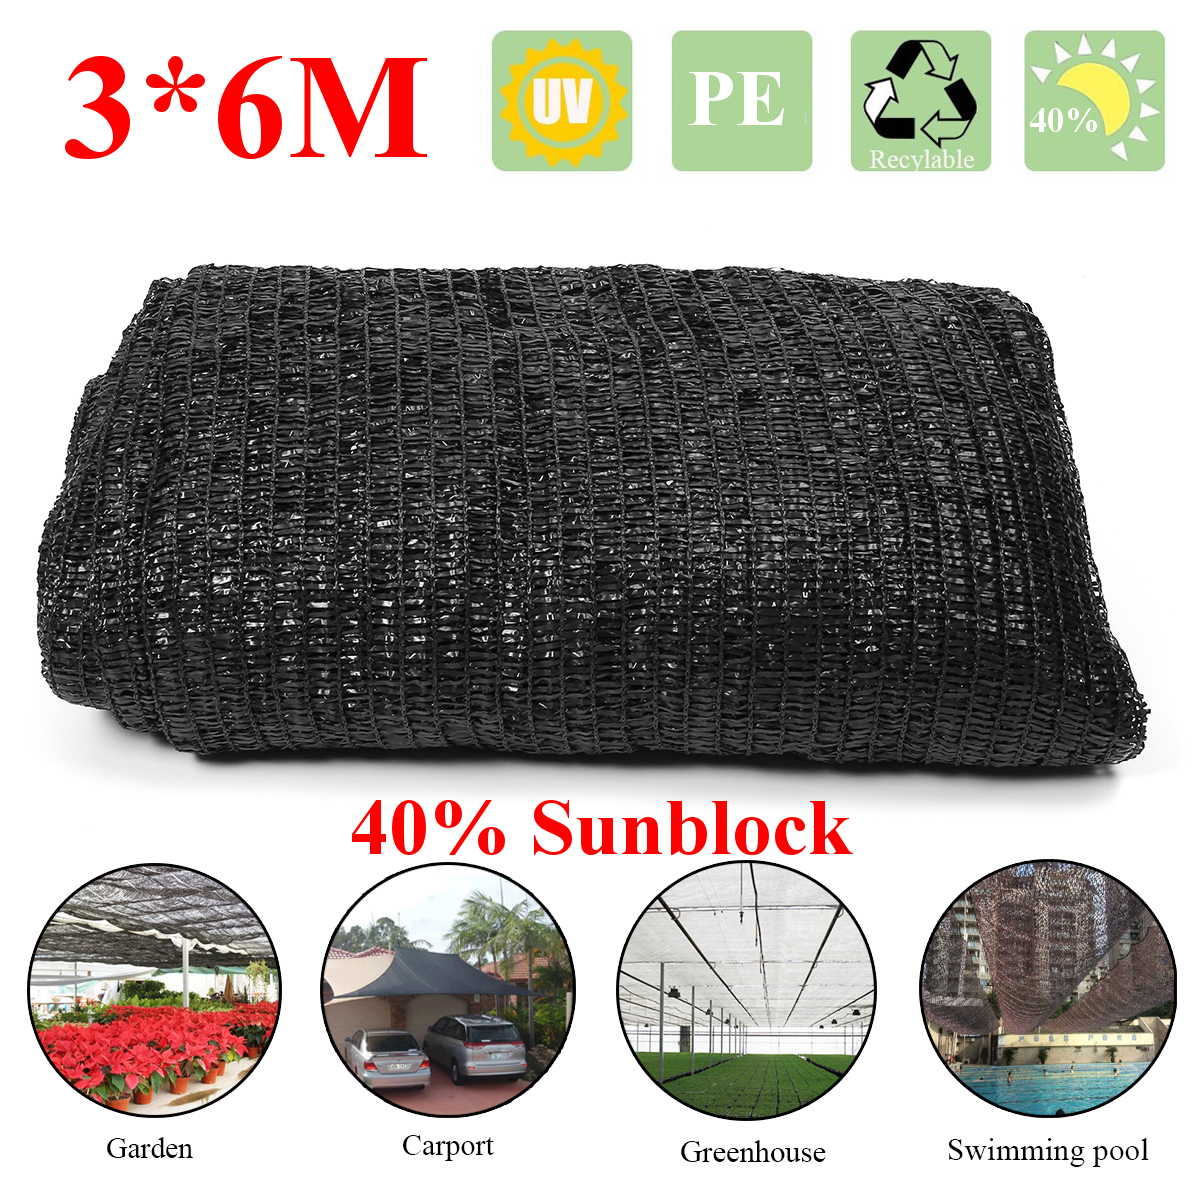 PE 6x3m Sunblock Shade Cloth Plant Cover Netting Shading Rate 40% Outdoor Sunscreen Shelter Canopy Patio Garden Decoration Black